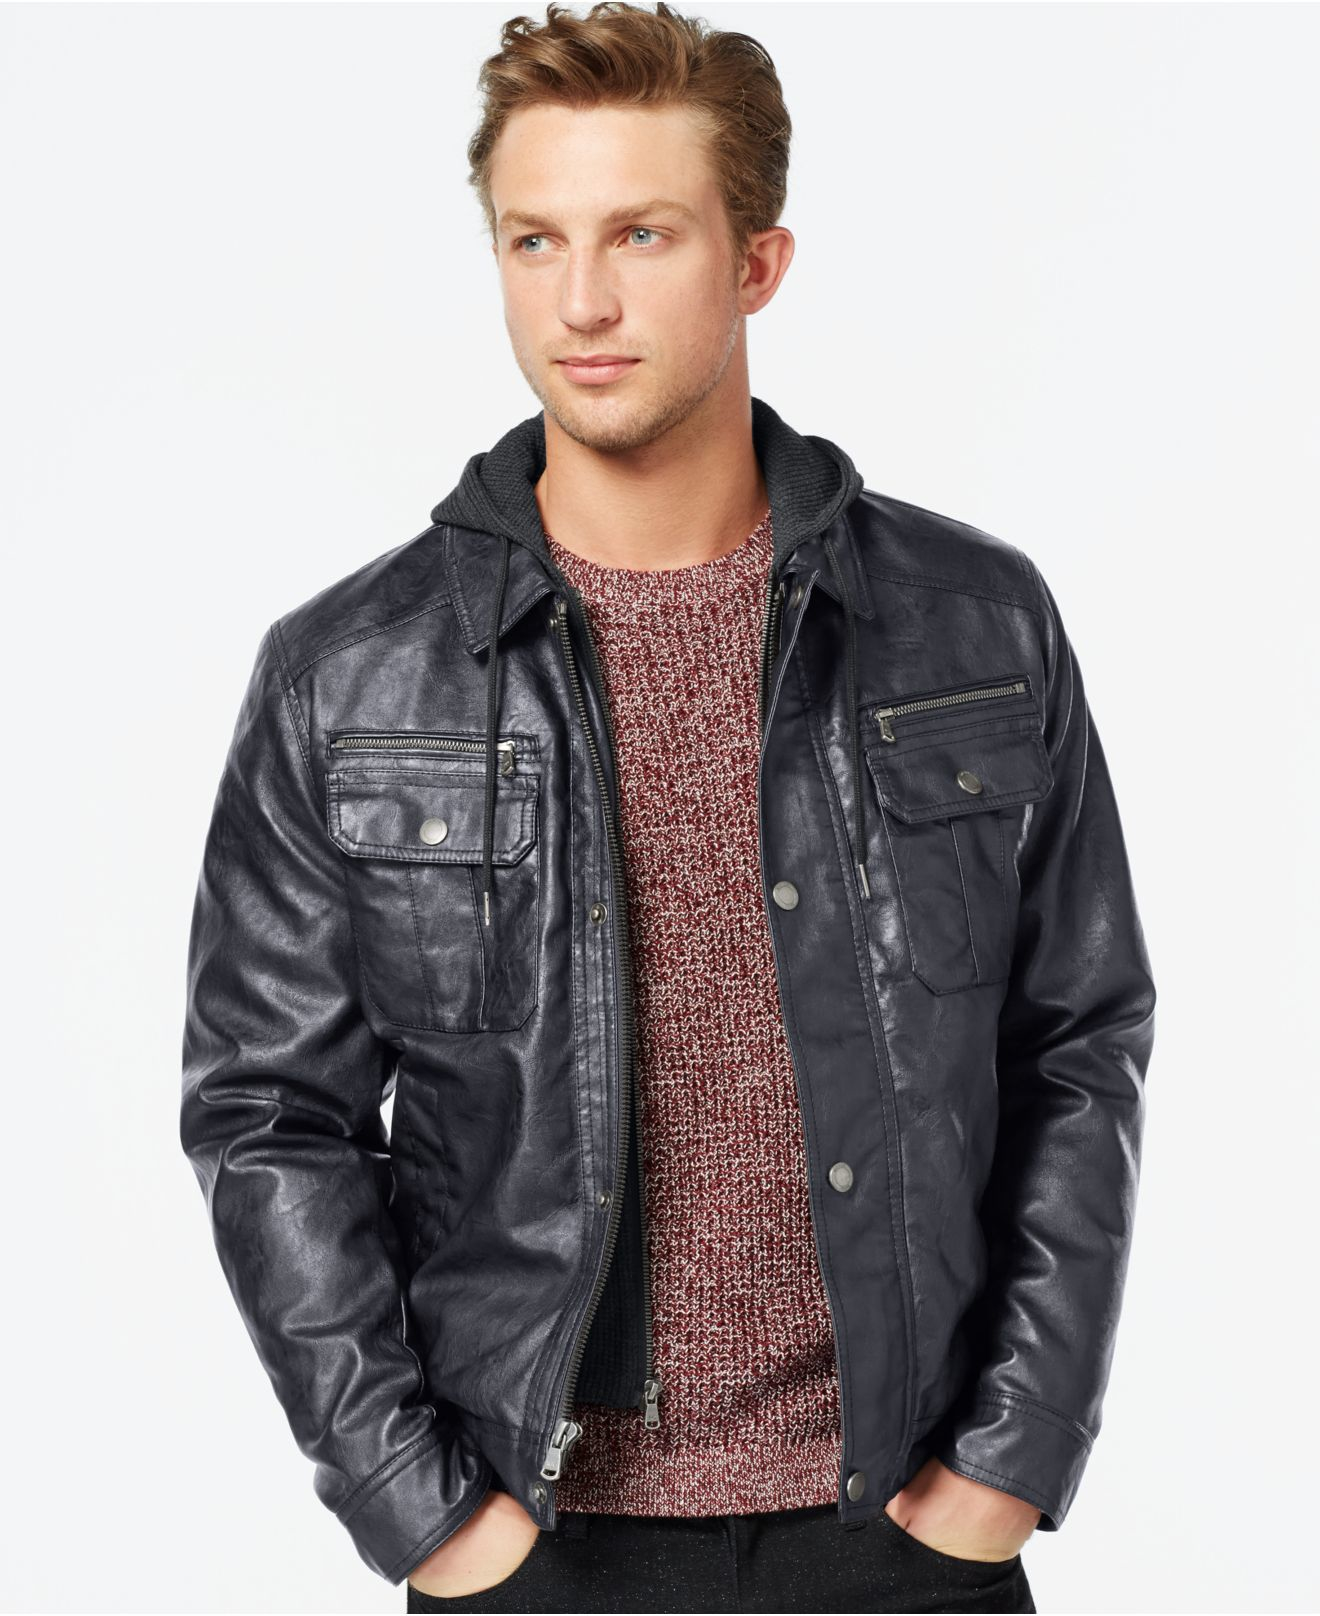 Fake leather jacket for men